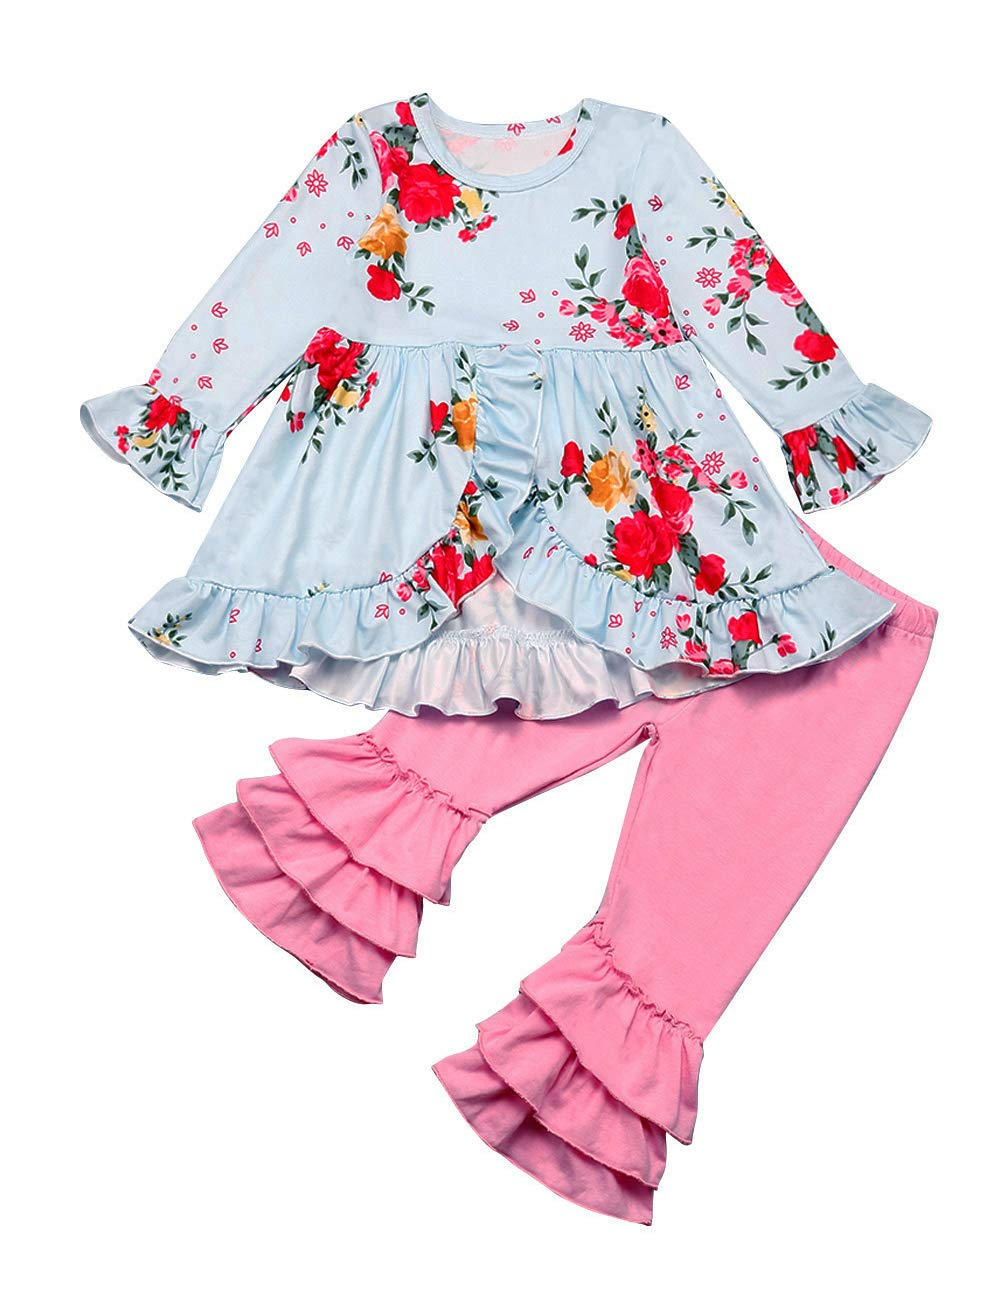 Newborn Infant Baby Girl Clothes Hoodie Sweatshirt Tops with Pocket+ Floral Pants+Headband Fall Winter Outfit Sets